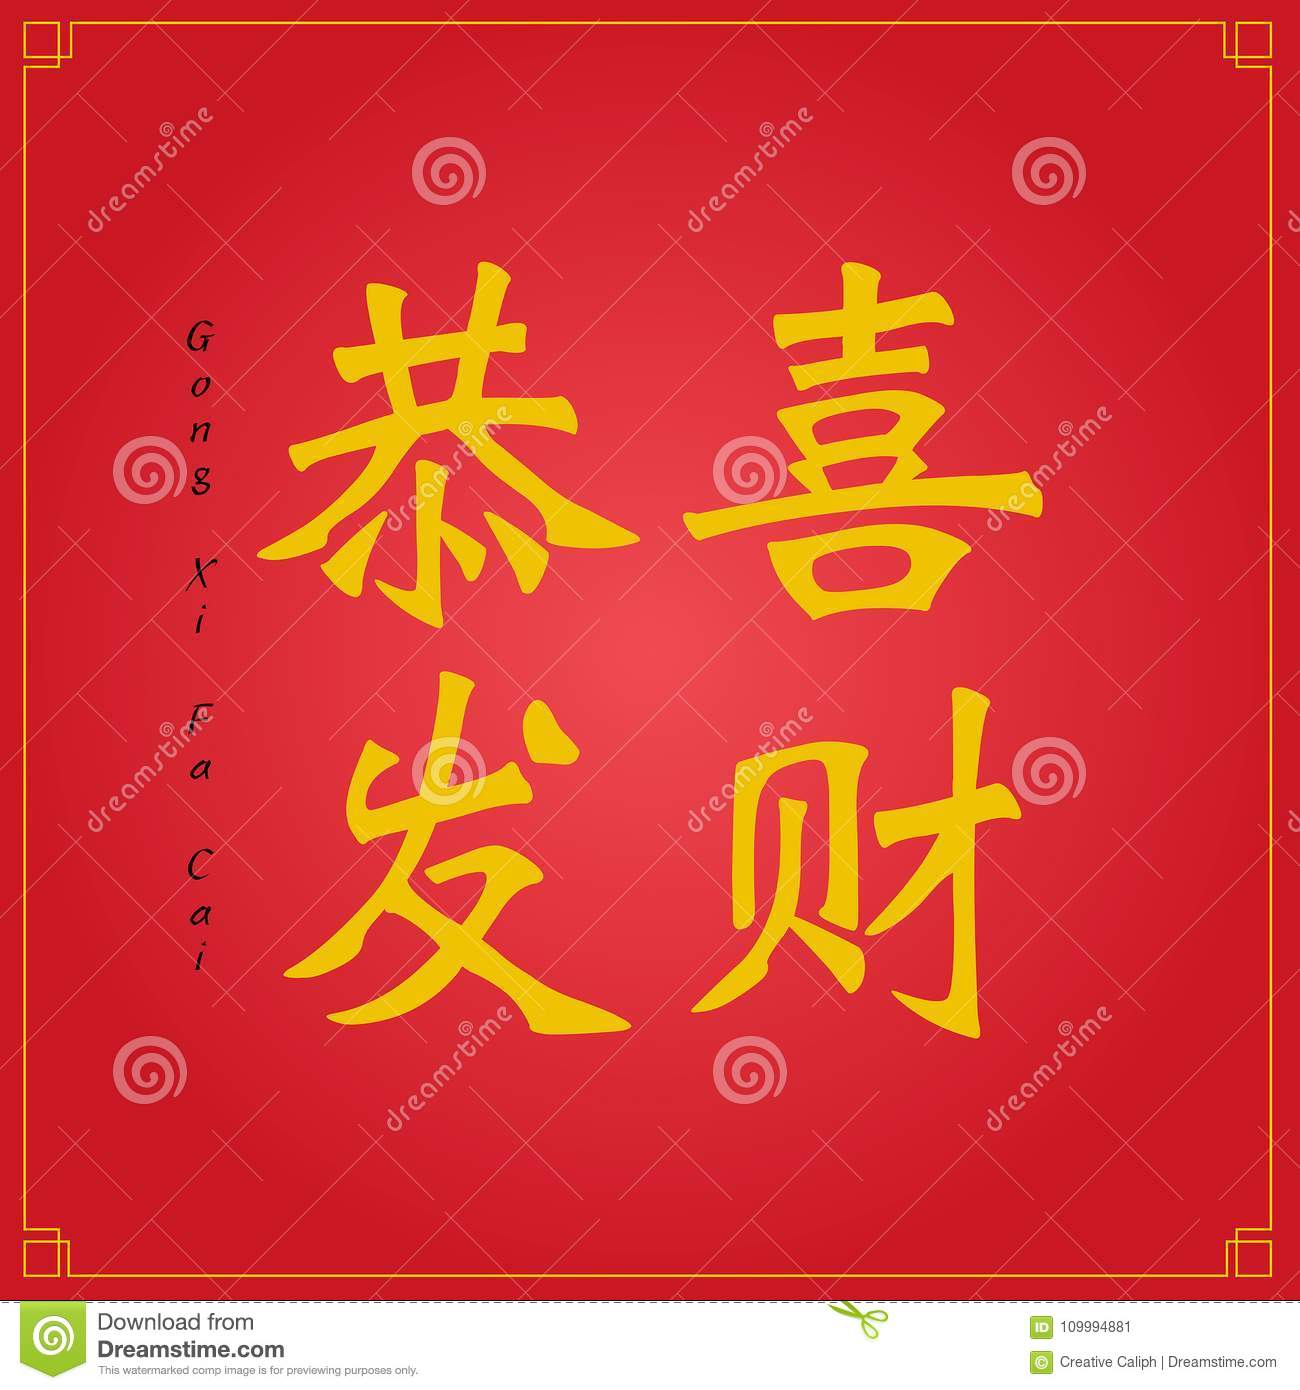 Chinese new year greeting card design chinese translation stock download chinese new year greeting card design chinese translation stock illustration illustration of m4hsunfo